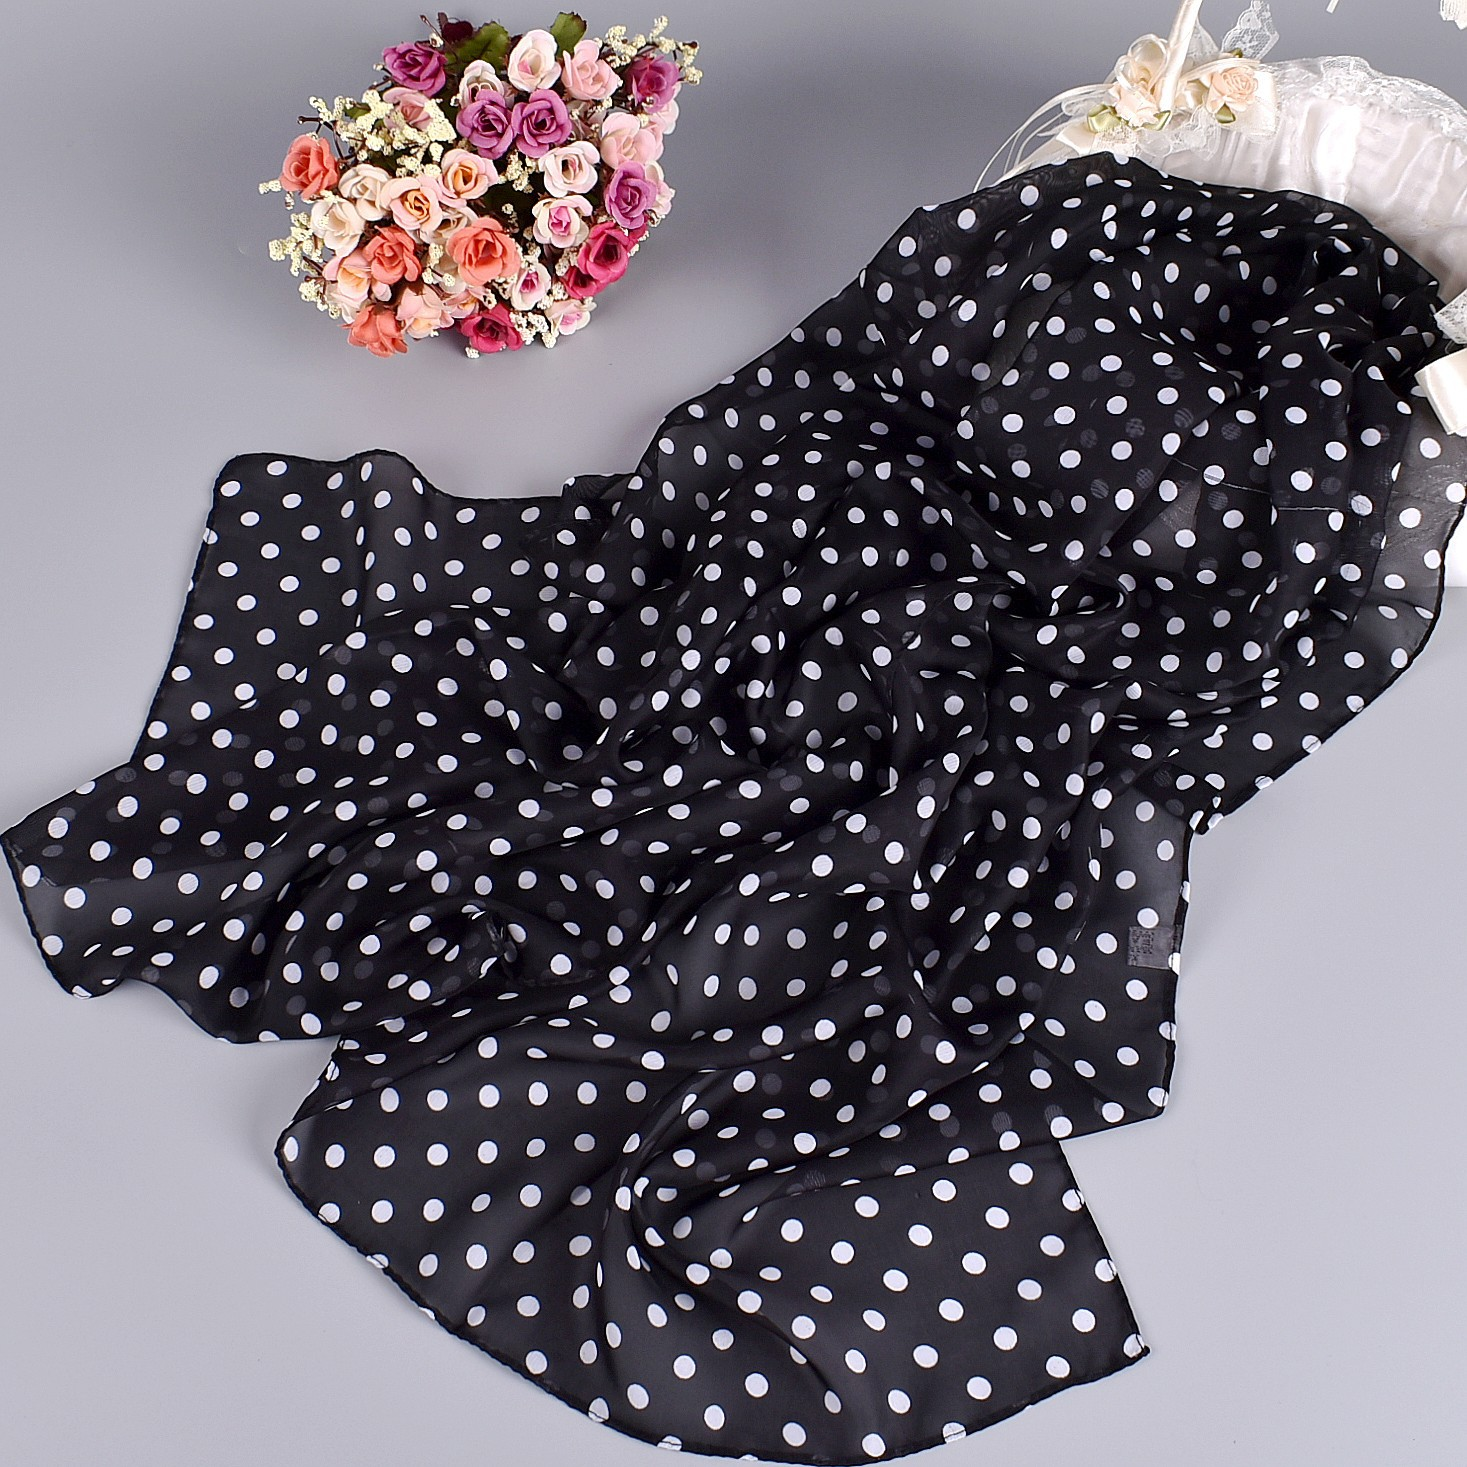 New Style Polka Dot Women's Chiffon Long Silk Scarf Spring And Summer Printed Scarf Shawl High Quality Women Fashion